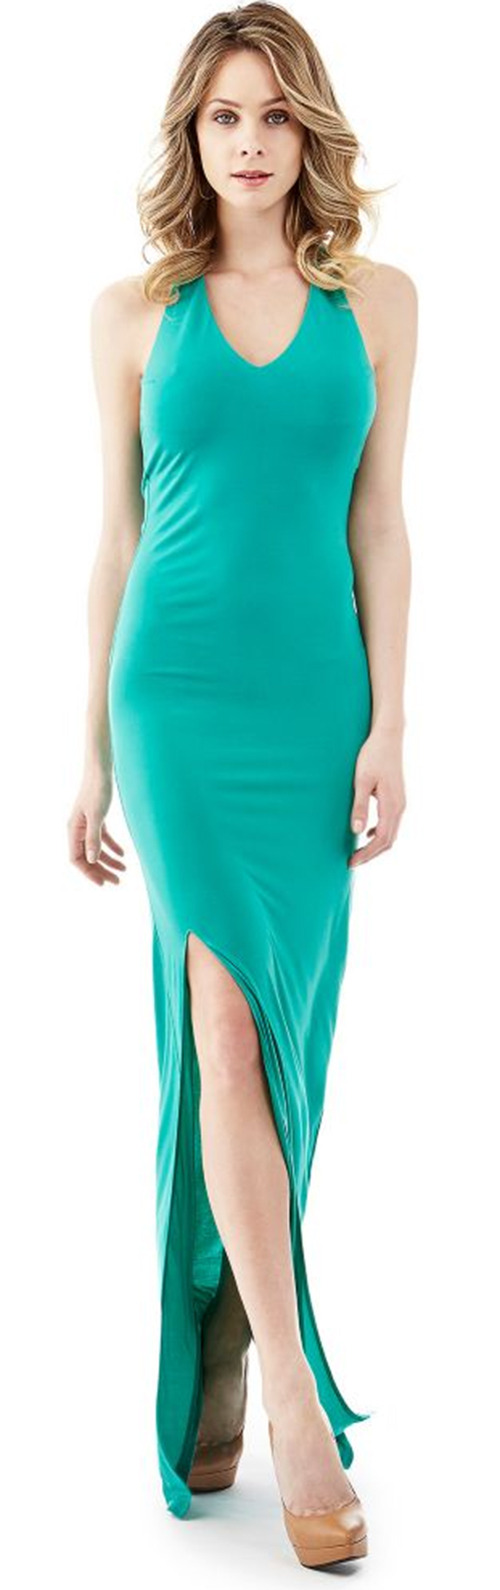 Robe longue moulante turquoise Guess